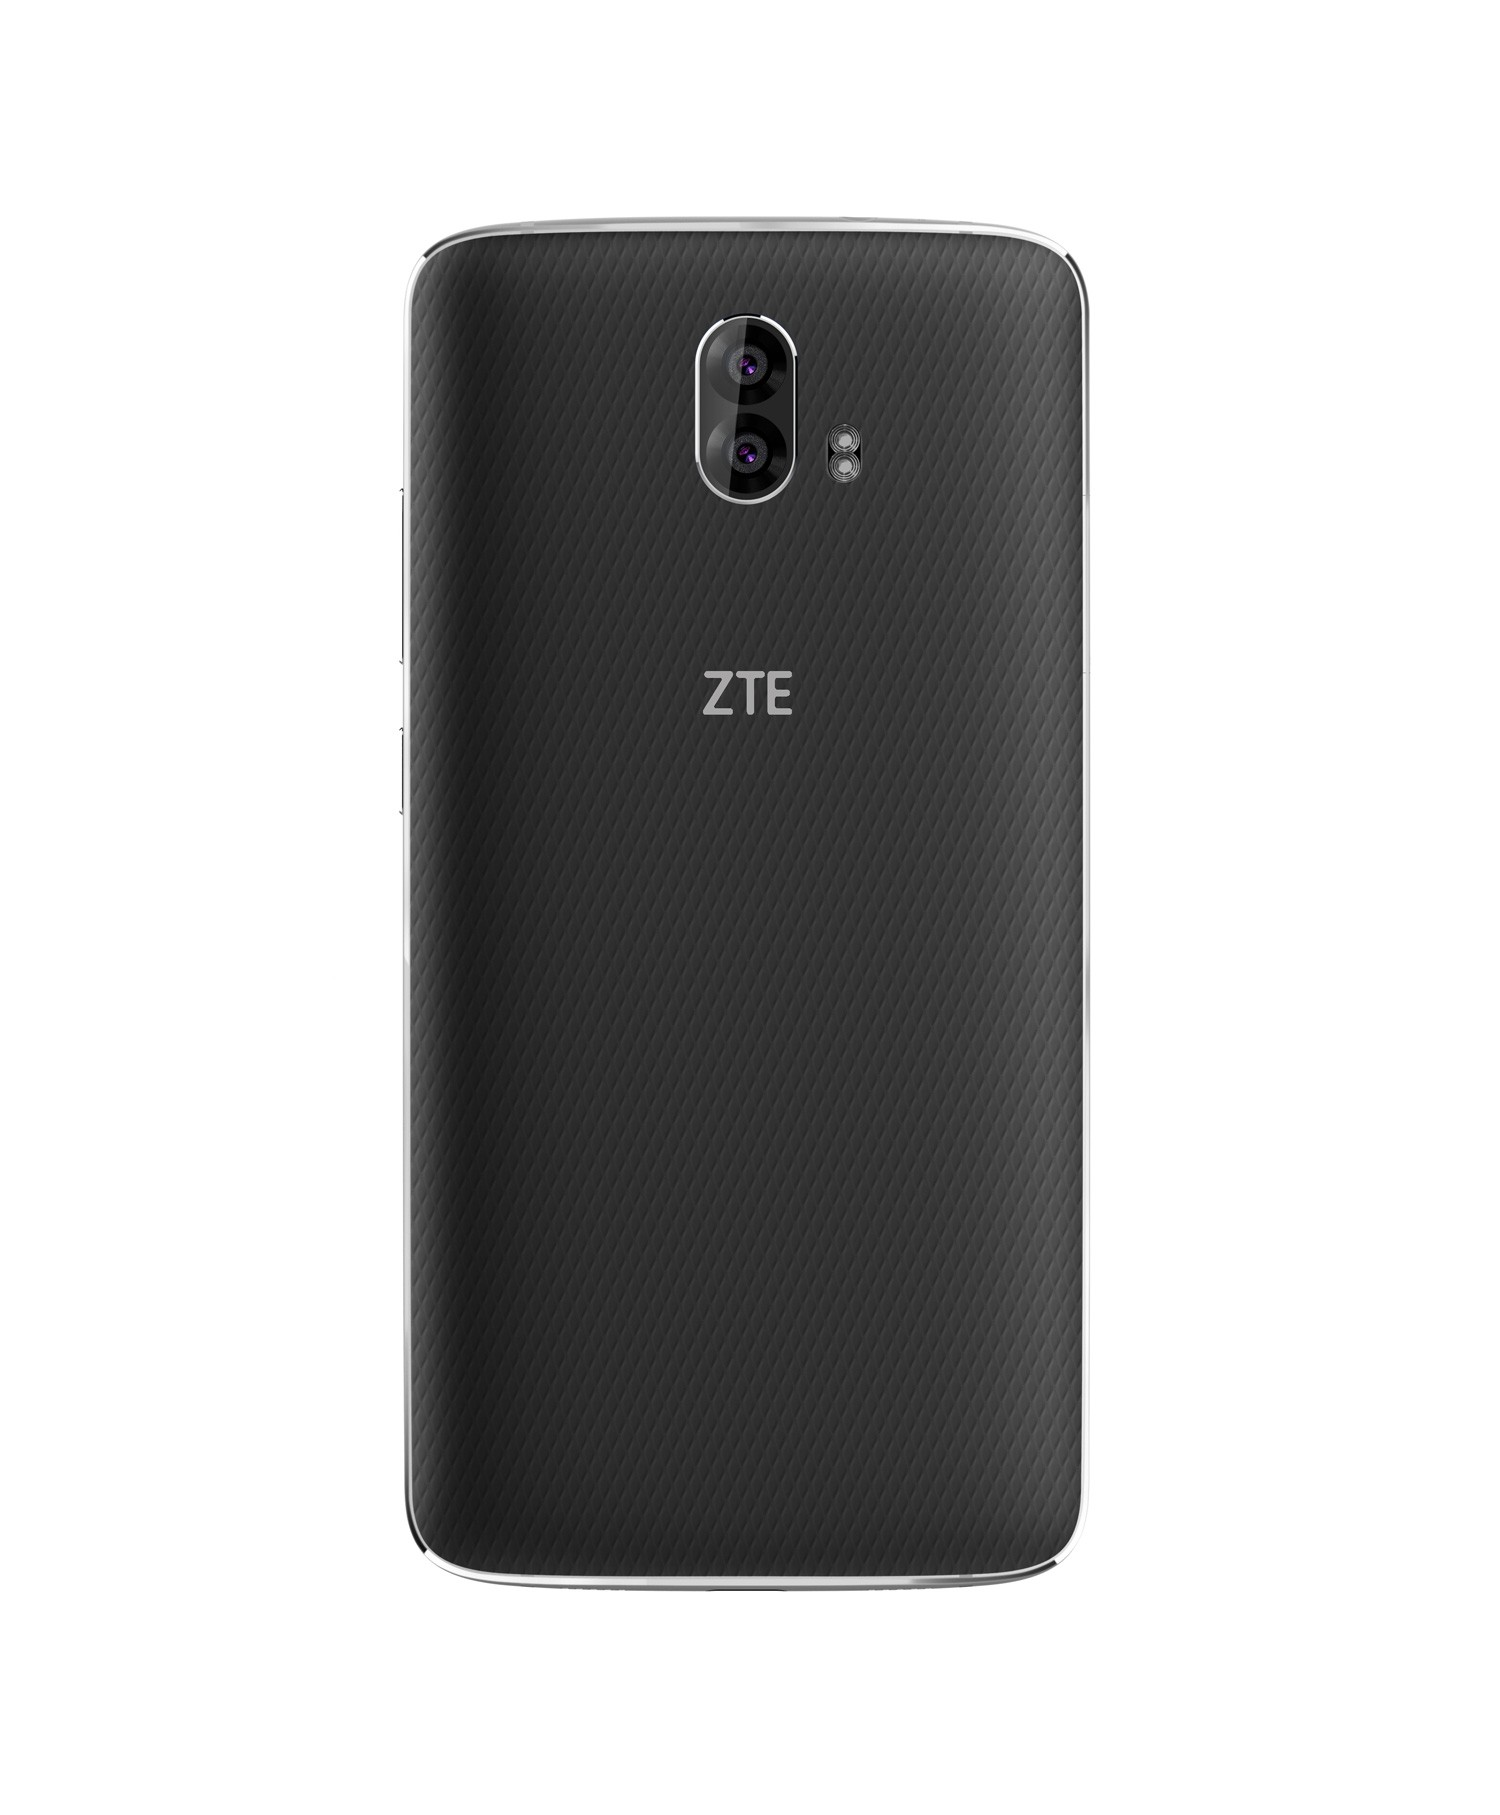 live here zte blade v8 pro dual camera mobiles available